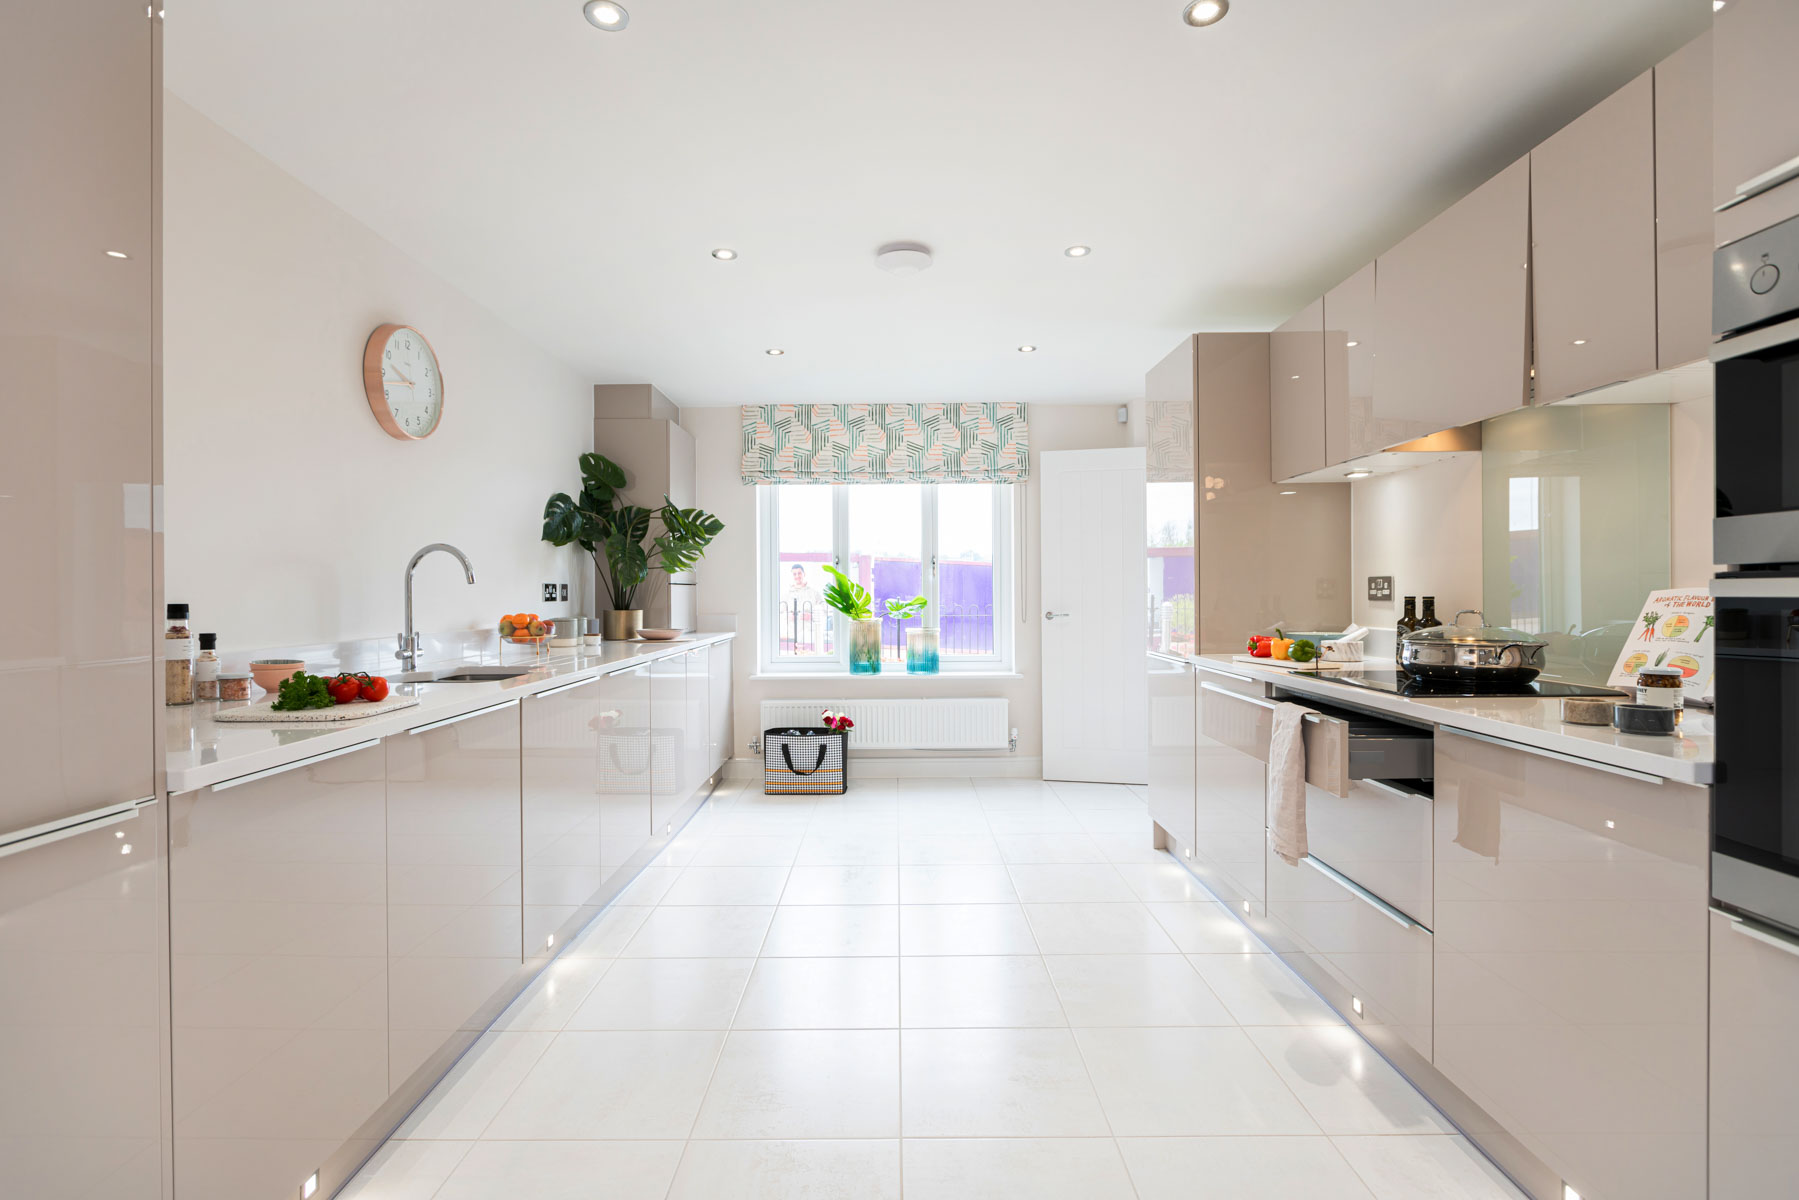 TW Exeter - Cranbrook - Marford example kitchen